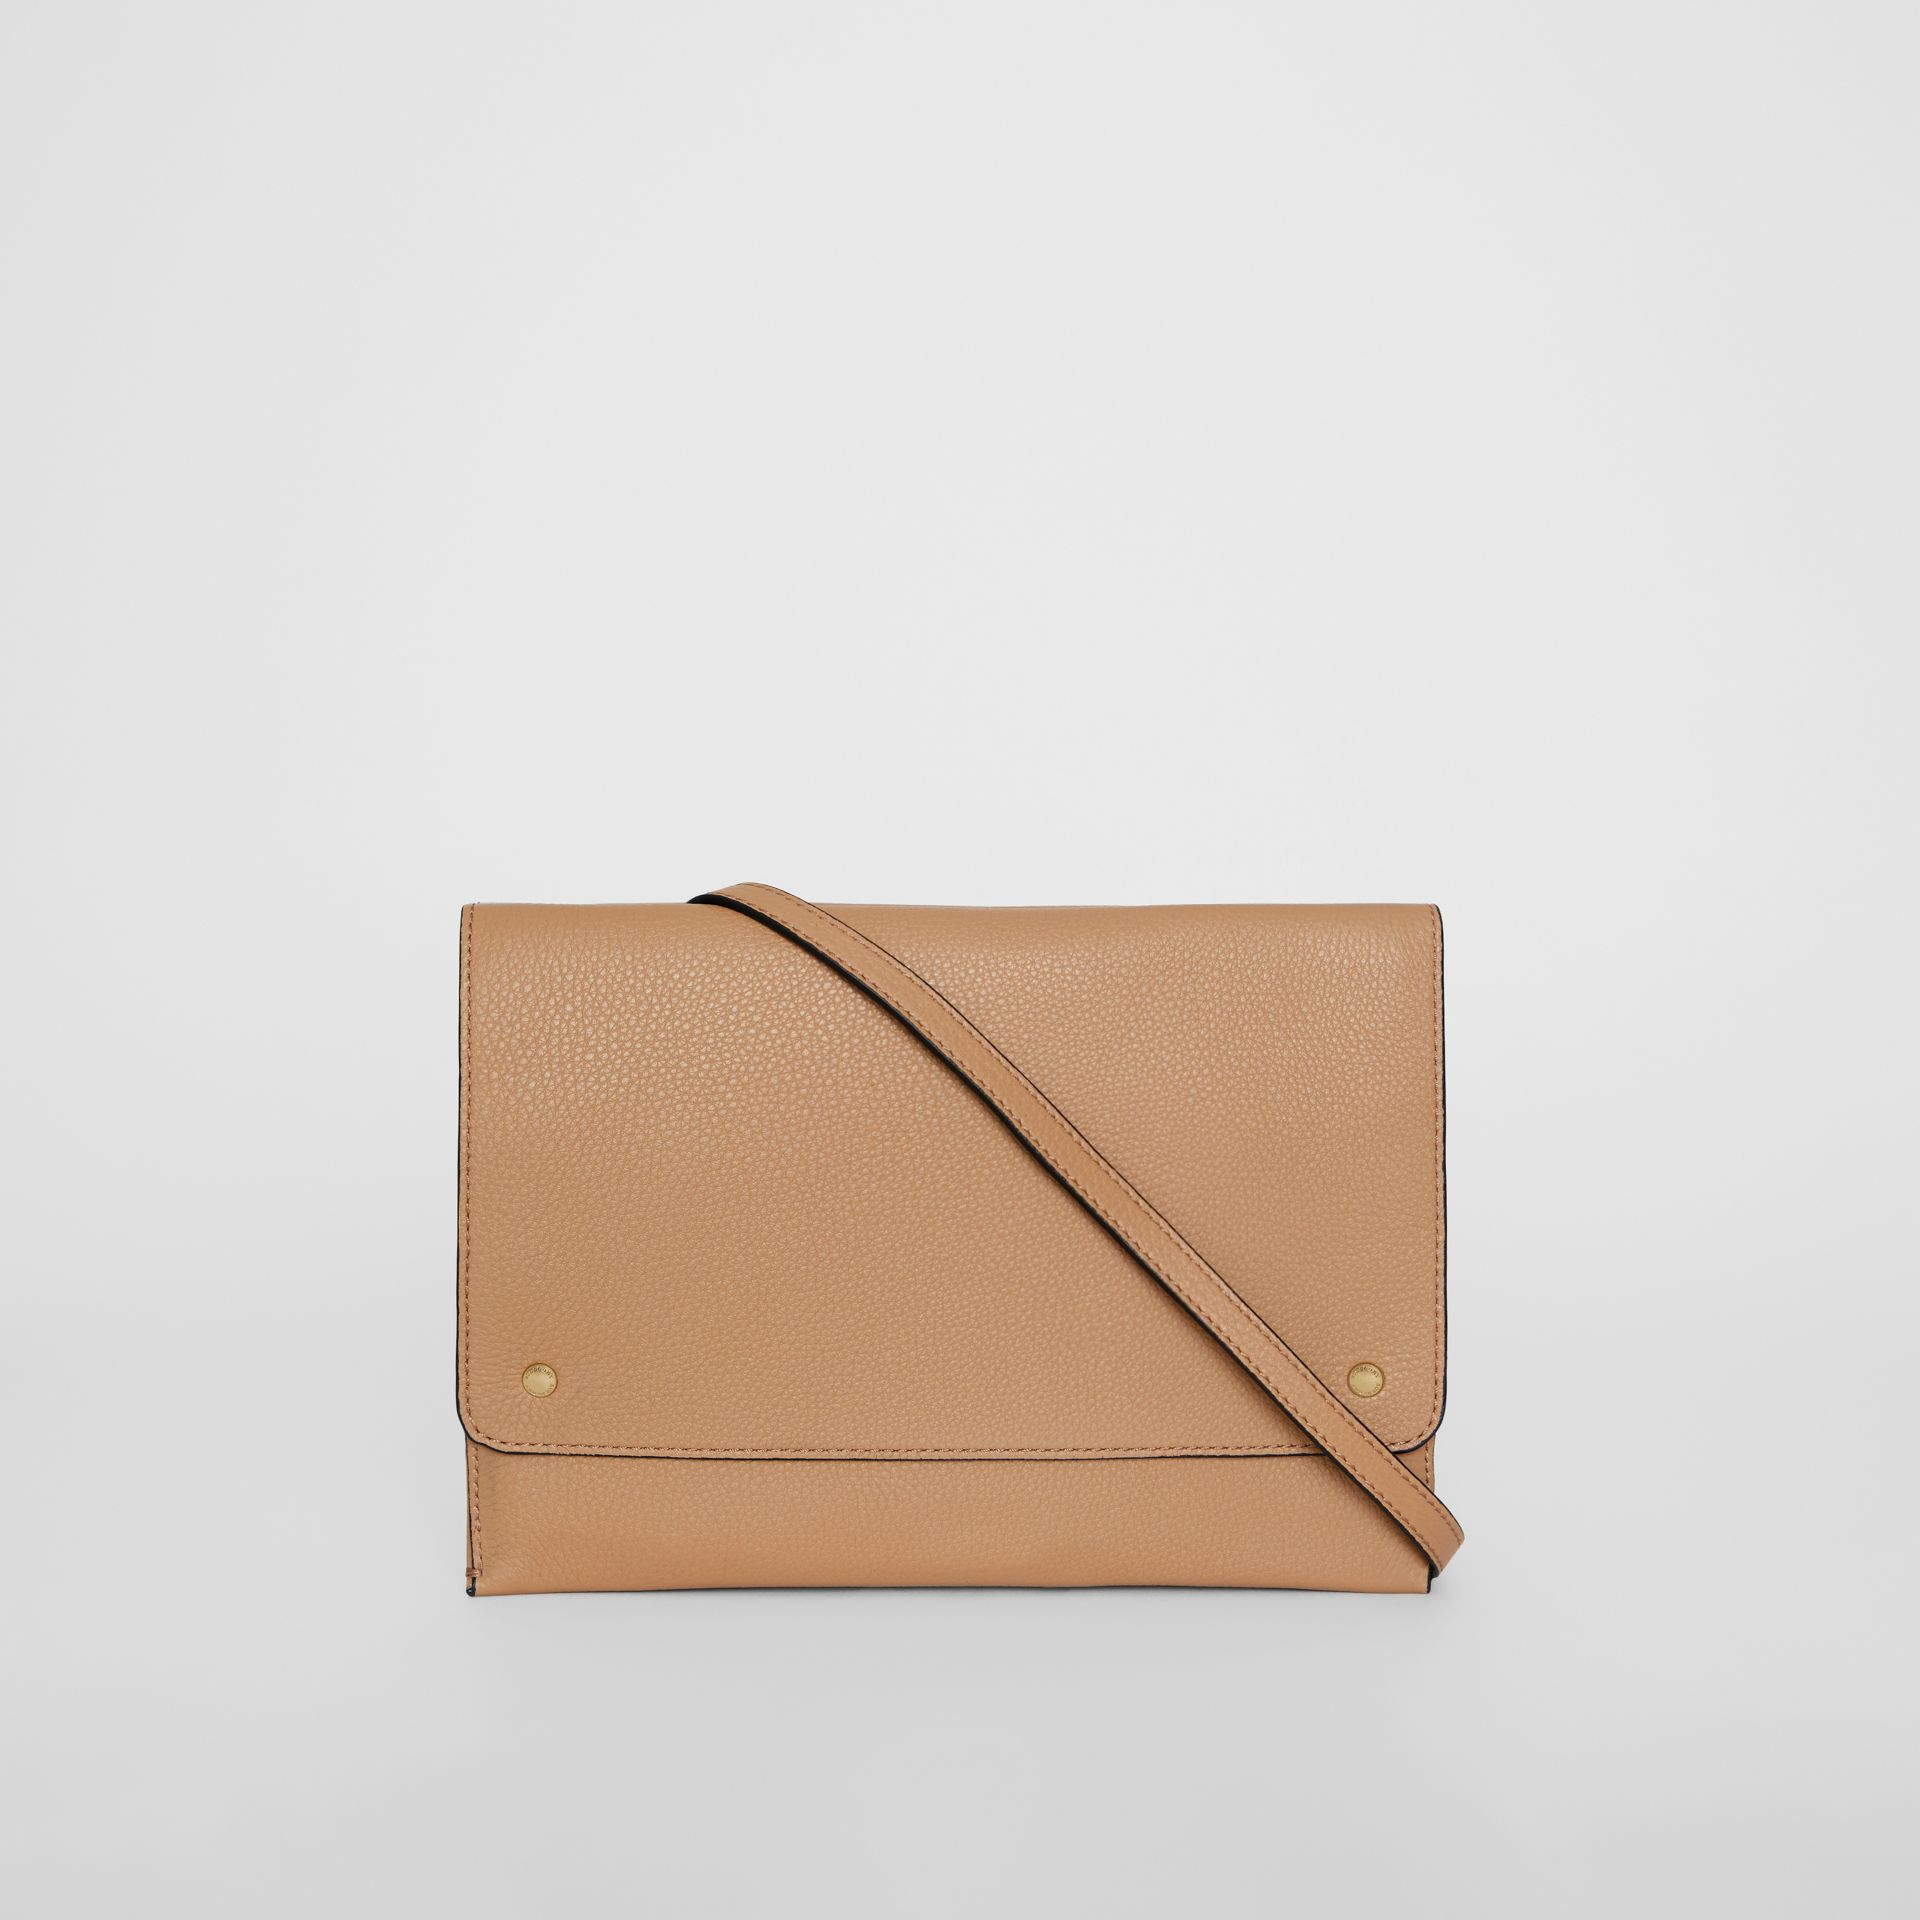 Leather Pouch with Detachable Strap in Light Camel - Women | Burberry - gallery image 7